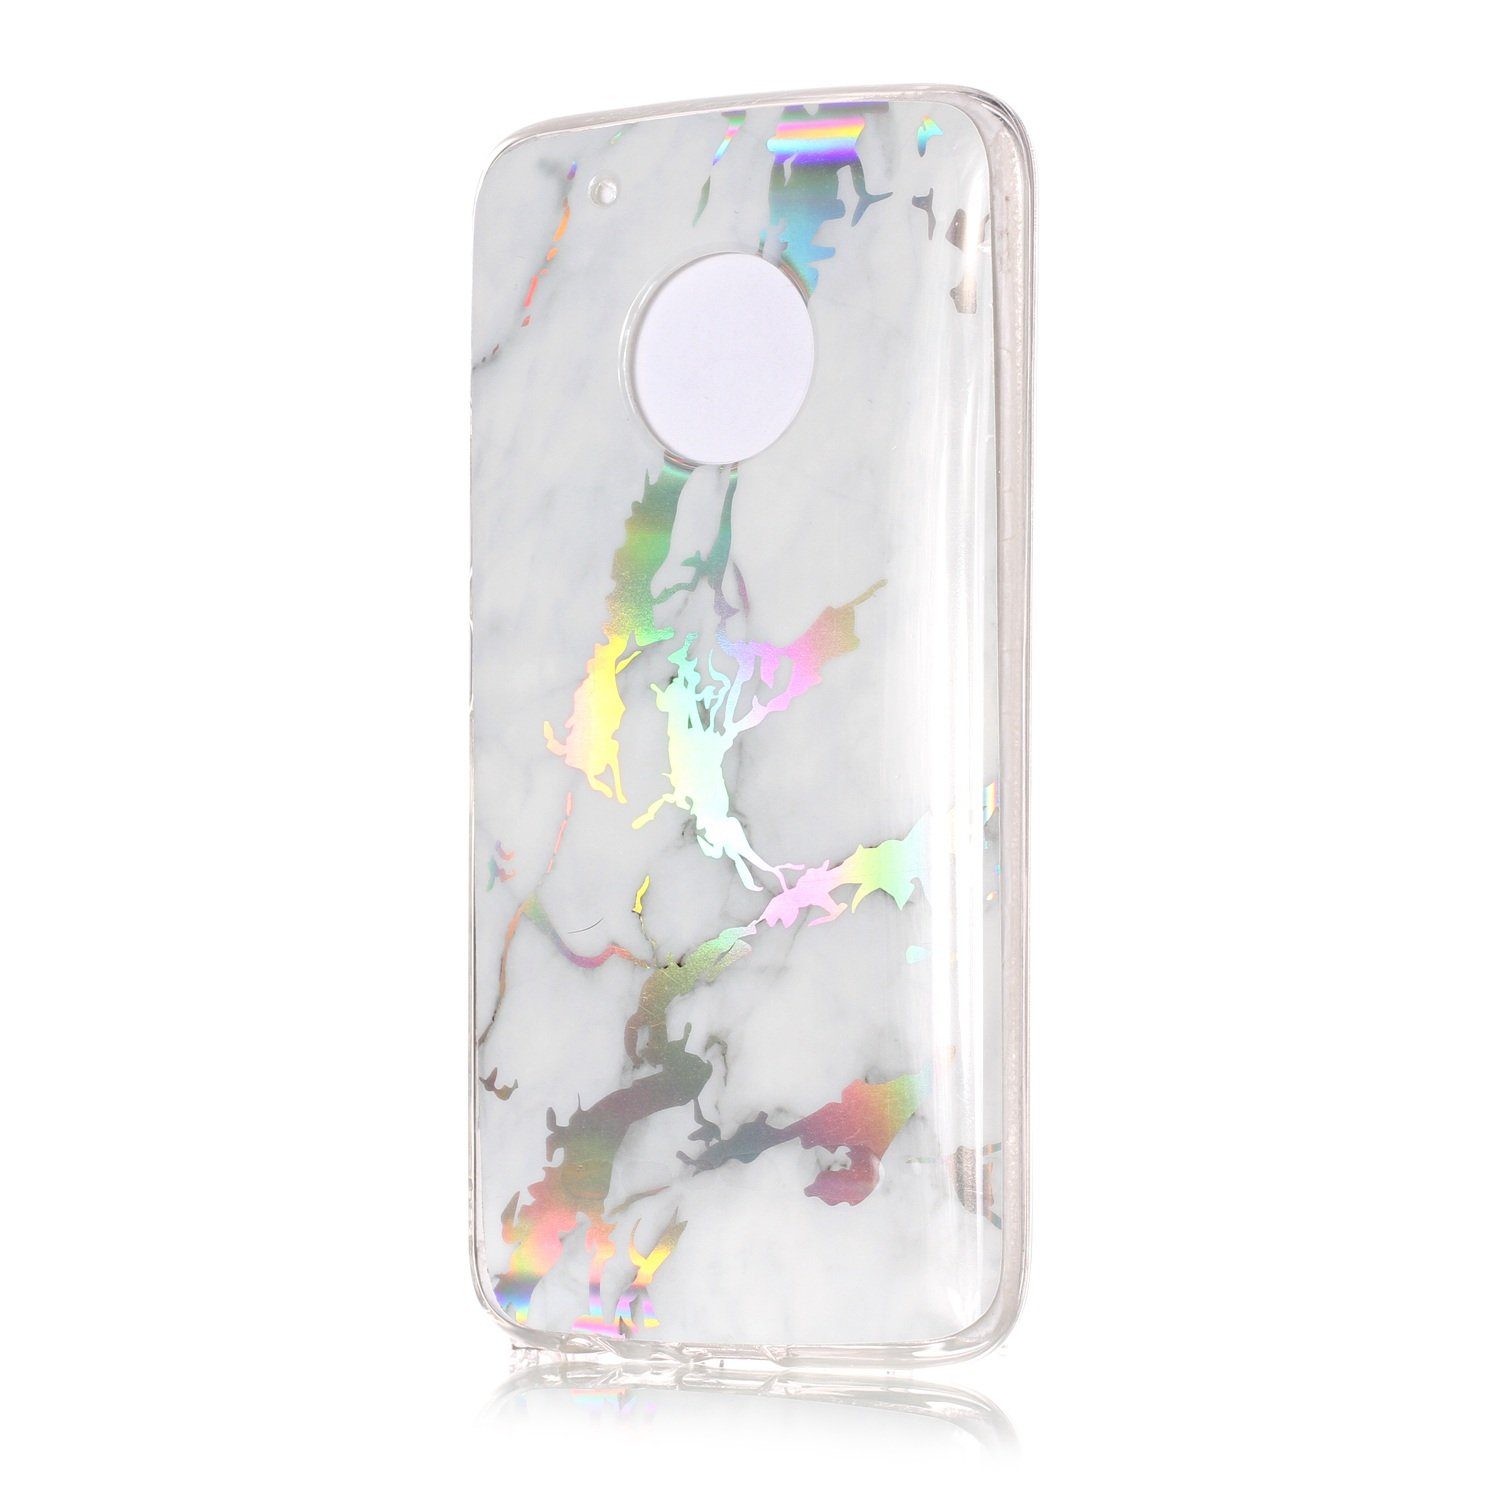 For Moto G5 Marble Case Blue,OYIME Unique Luxury Glitter Colorful Plating Pattern Skin Design Clear Silicone Rubber Slim Fit Ultra Thin Protective Back Cover Glossy Soft Gel TPU Shell Shockproof Drop Protection Protective Transparent Bumper and Screen Prot